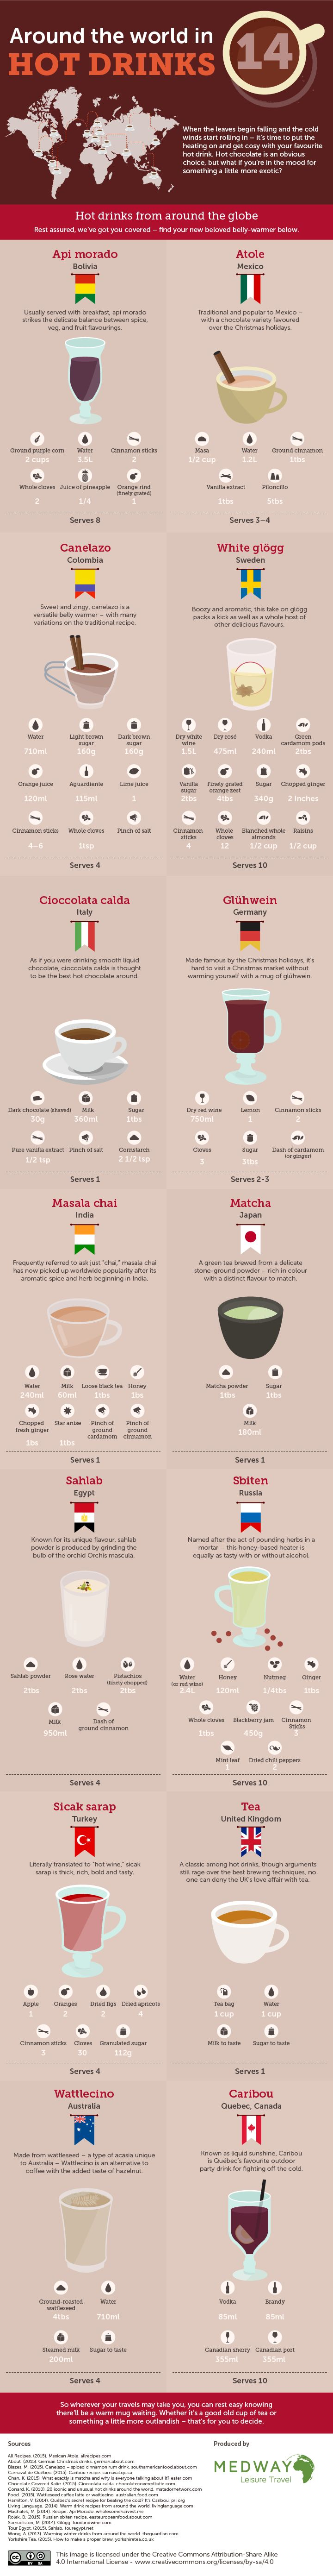 8 Infographics Show You How To Make Tasty Hot Drinks That Keep You Warm